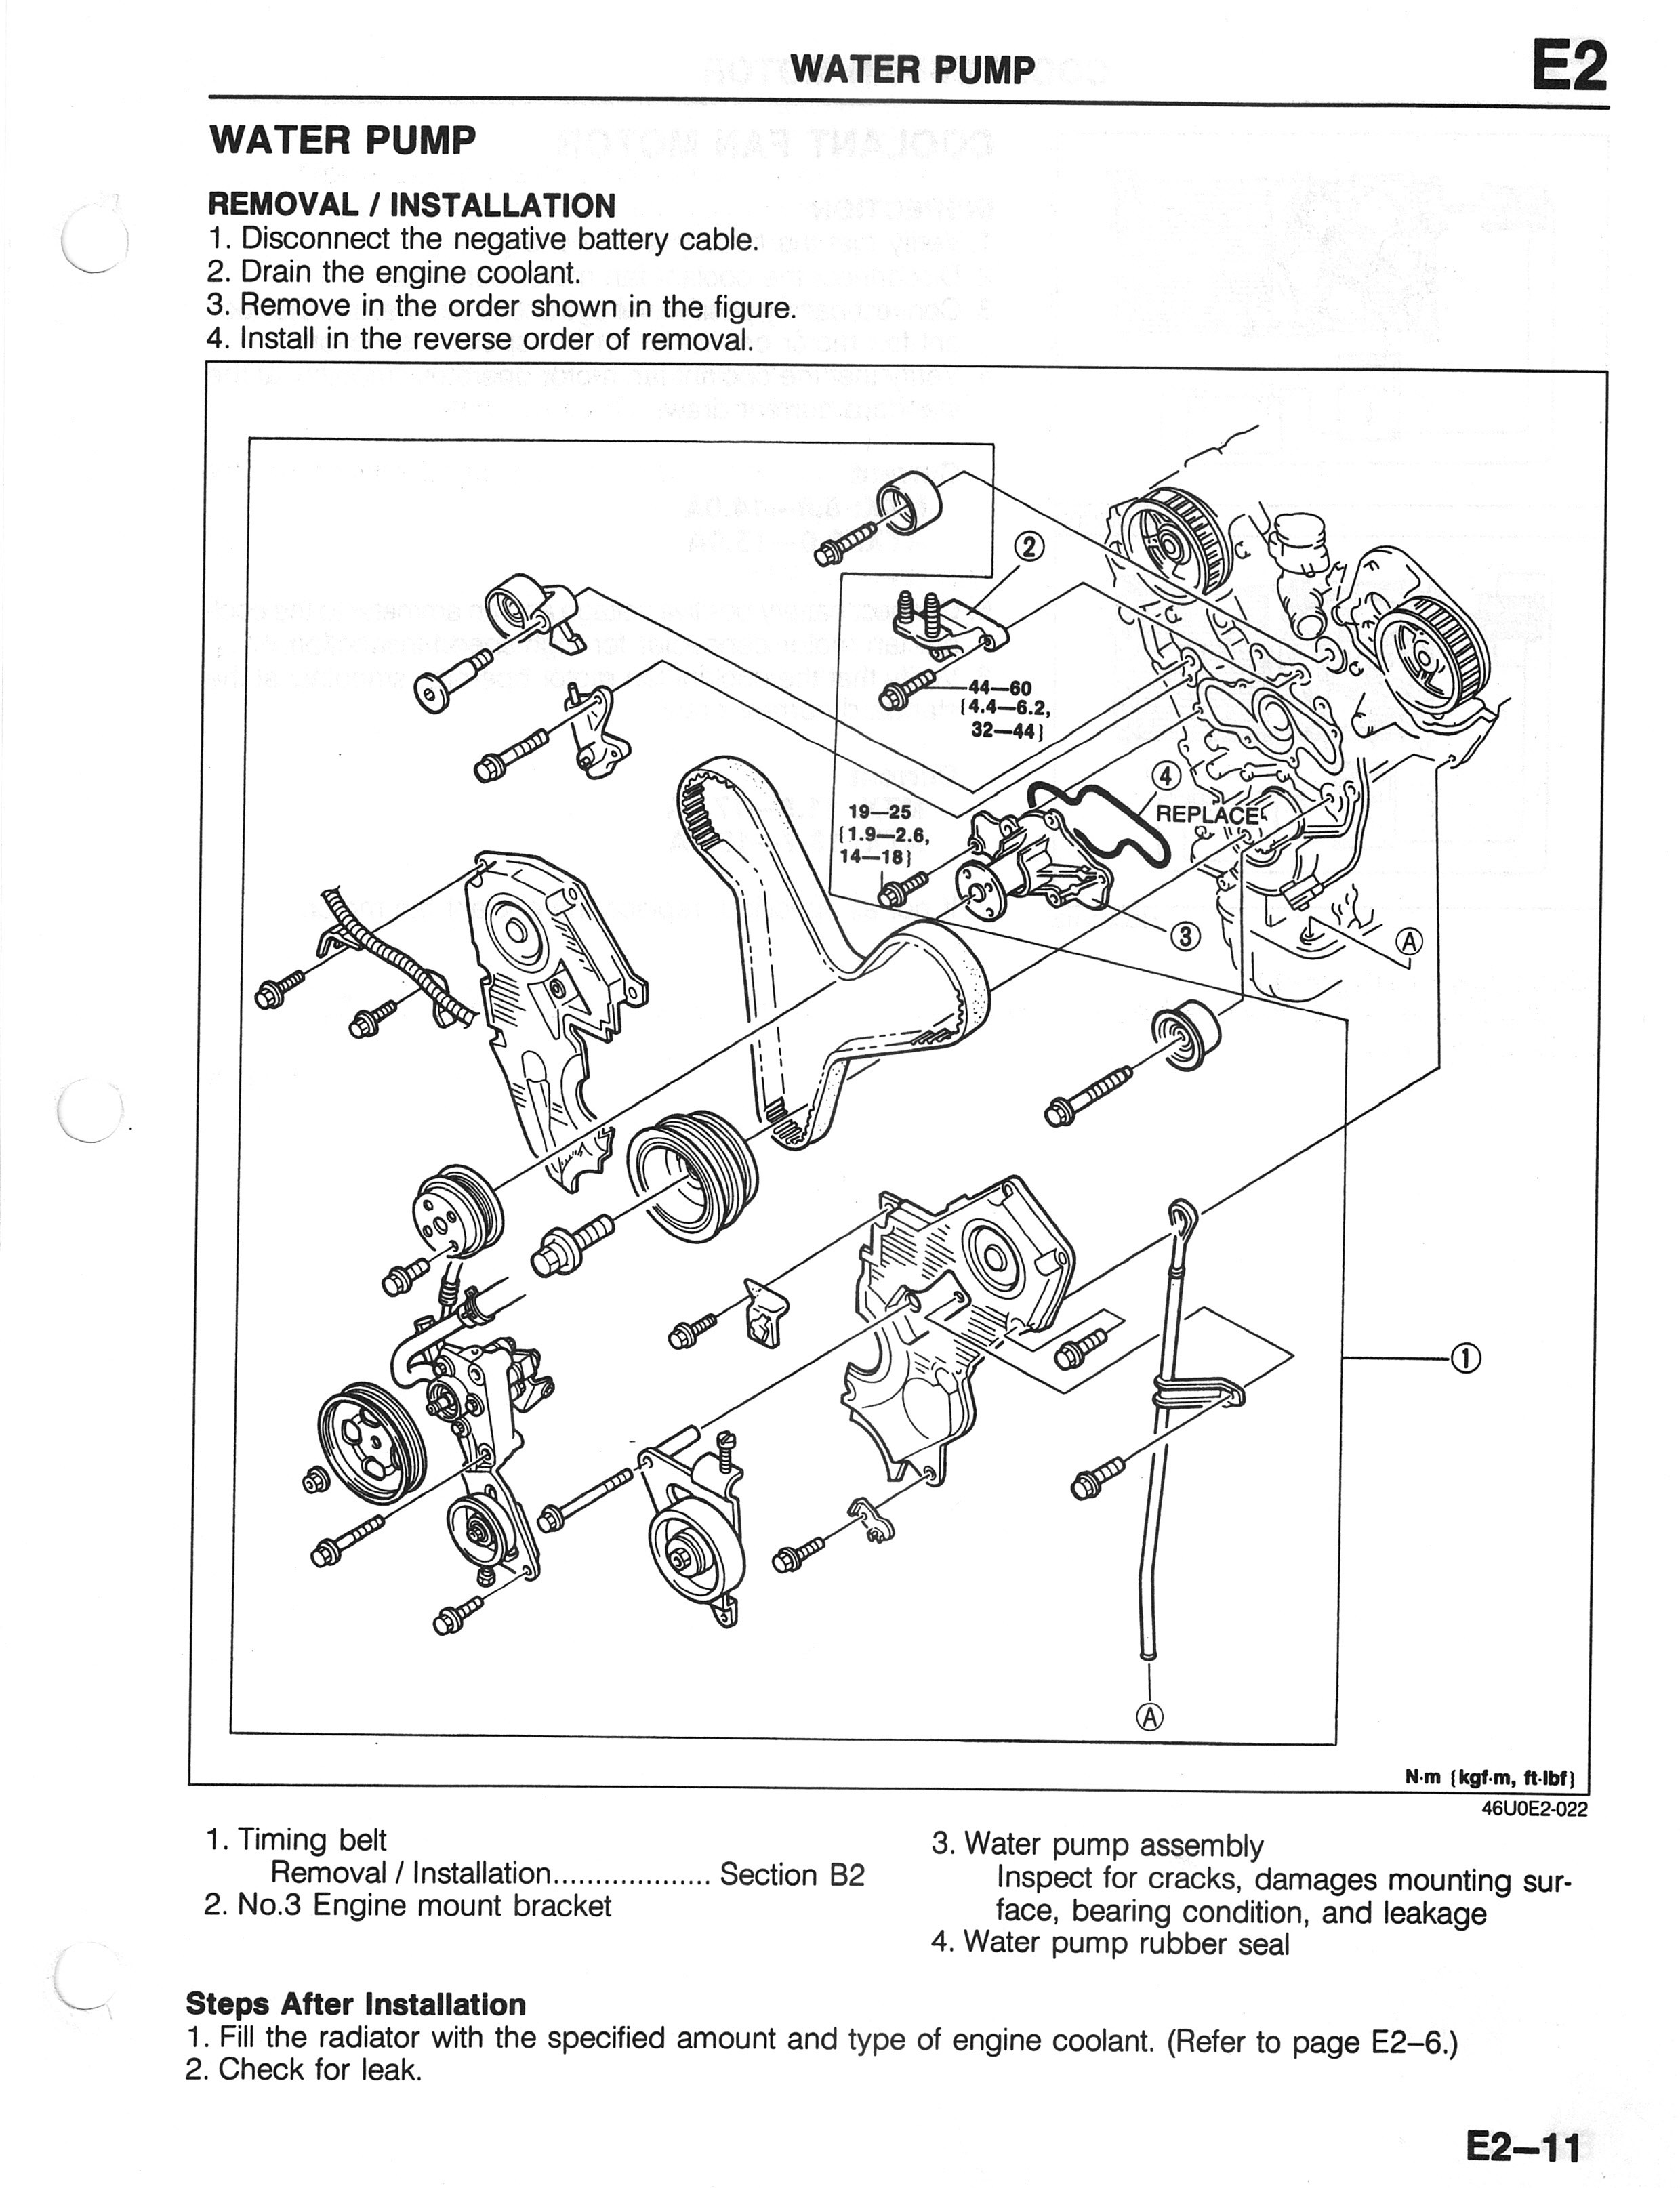 2001 Mazda Tribute V6 Engine Diagram is It the Water Pump 1993 2002 2 5l V6 Mazda626 forums Of 2001 Mazda Tribute V6 Engine Diagram